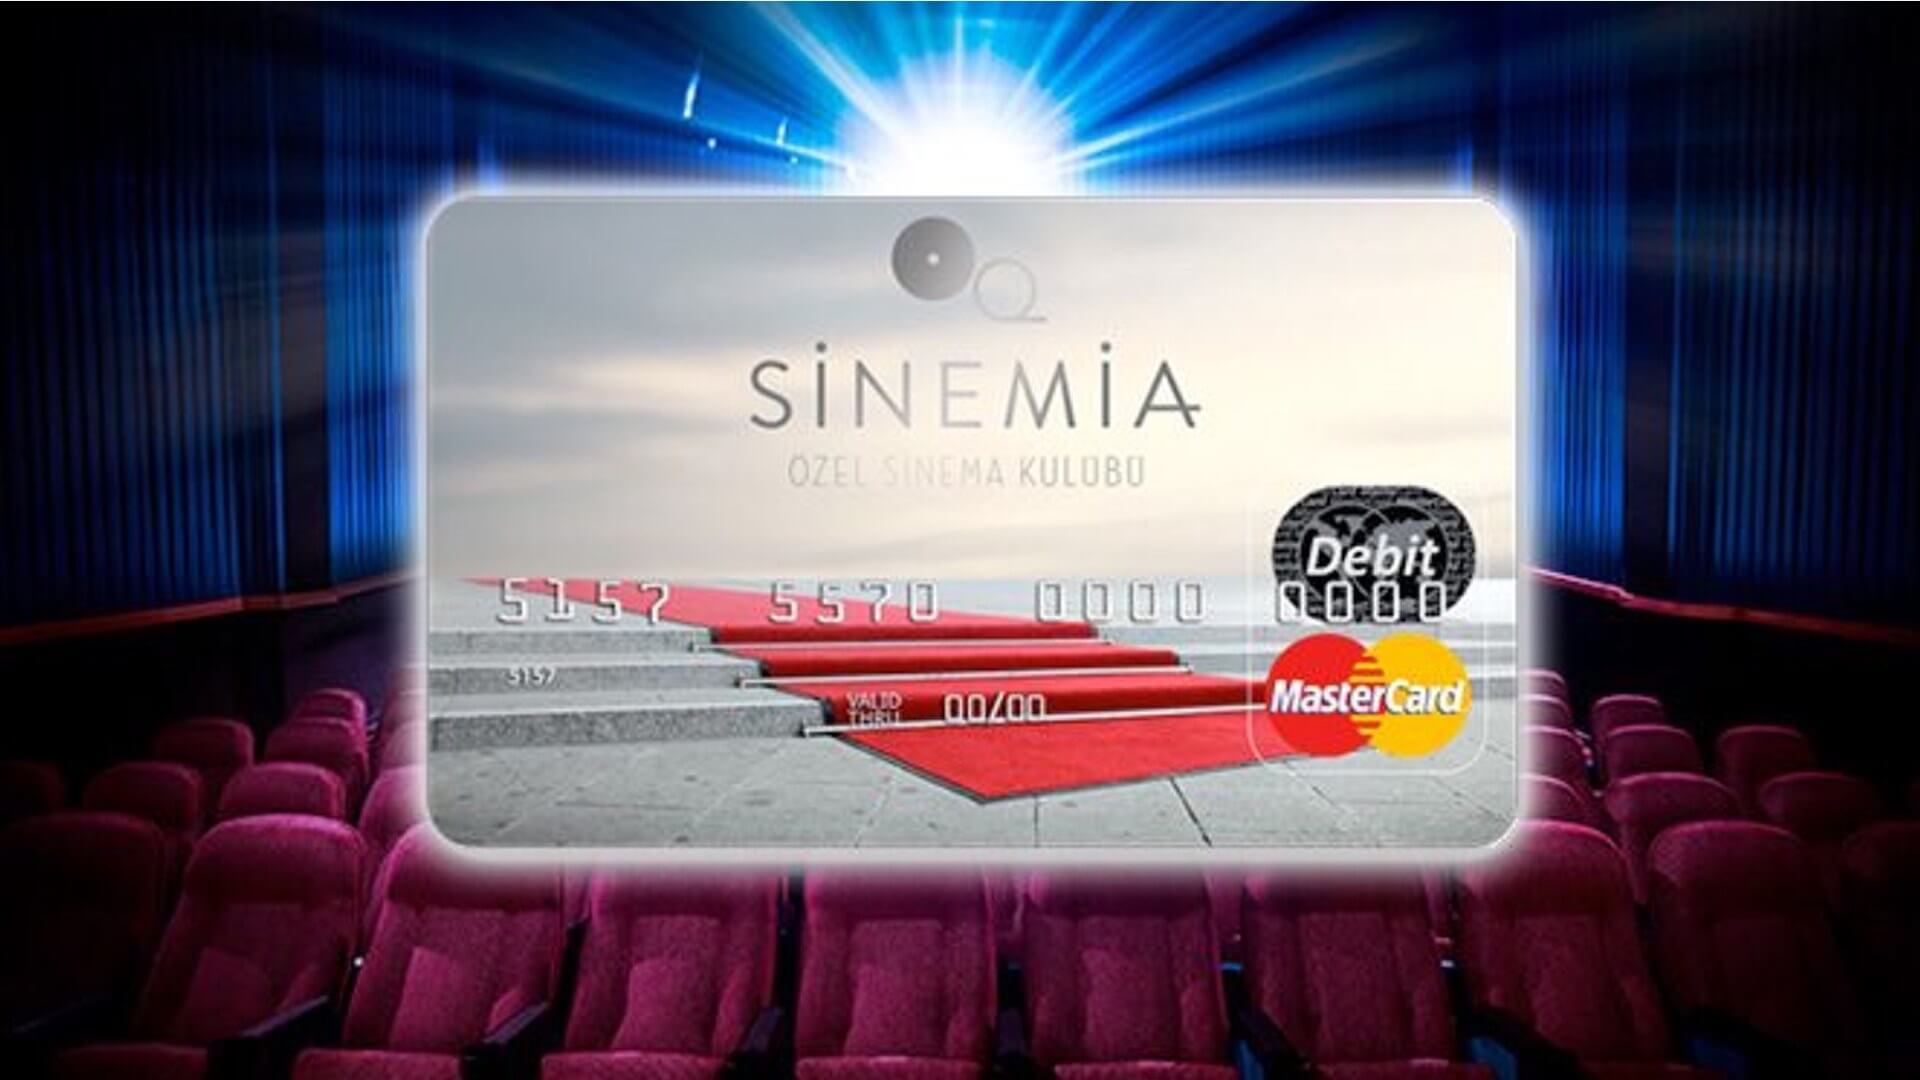 Sinemia confirms canceled accounts fraudulently misused the service